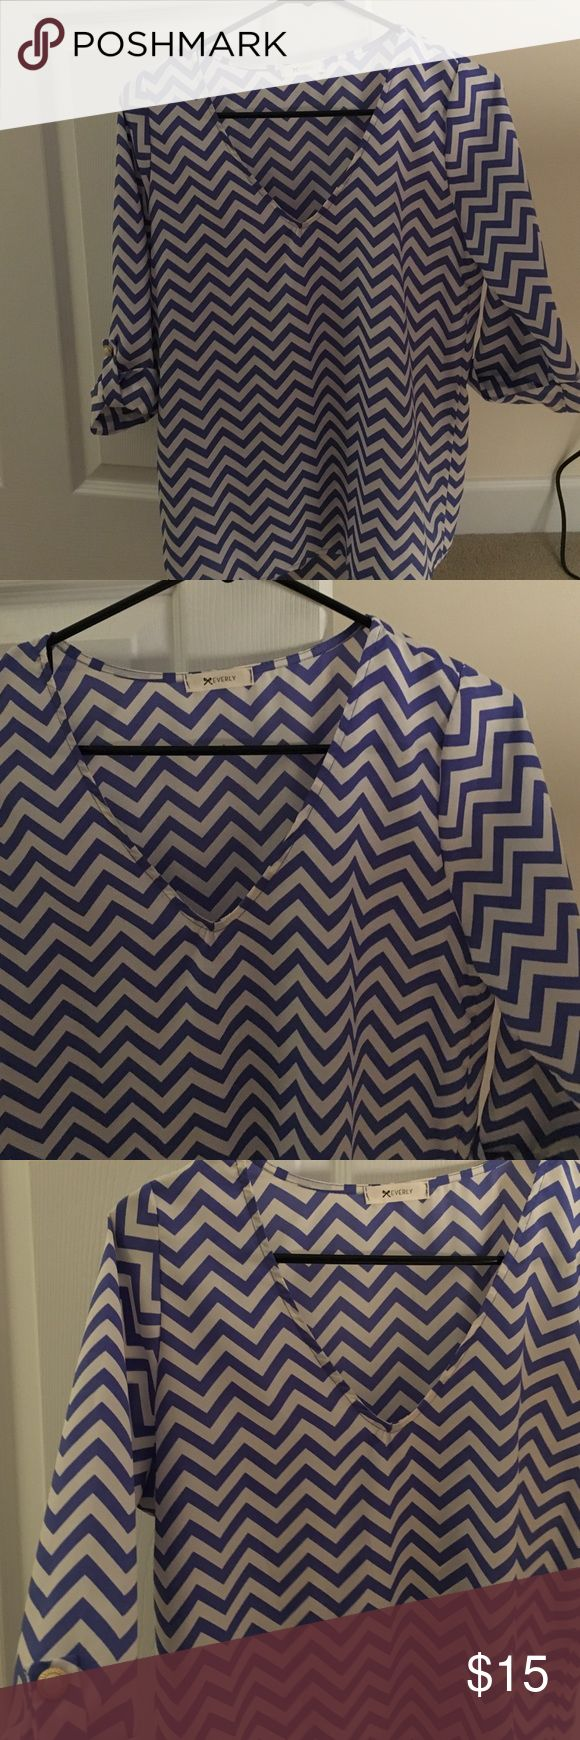 Everly Chevron Top Everly, purple Chevron 3/4 sleeve top Everly Tops Blouses